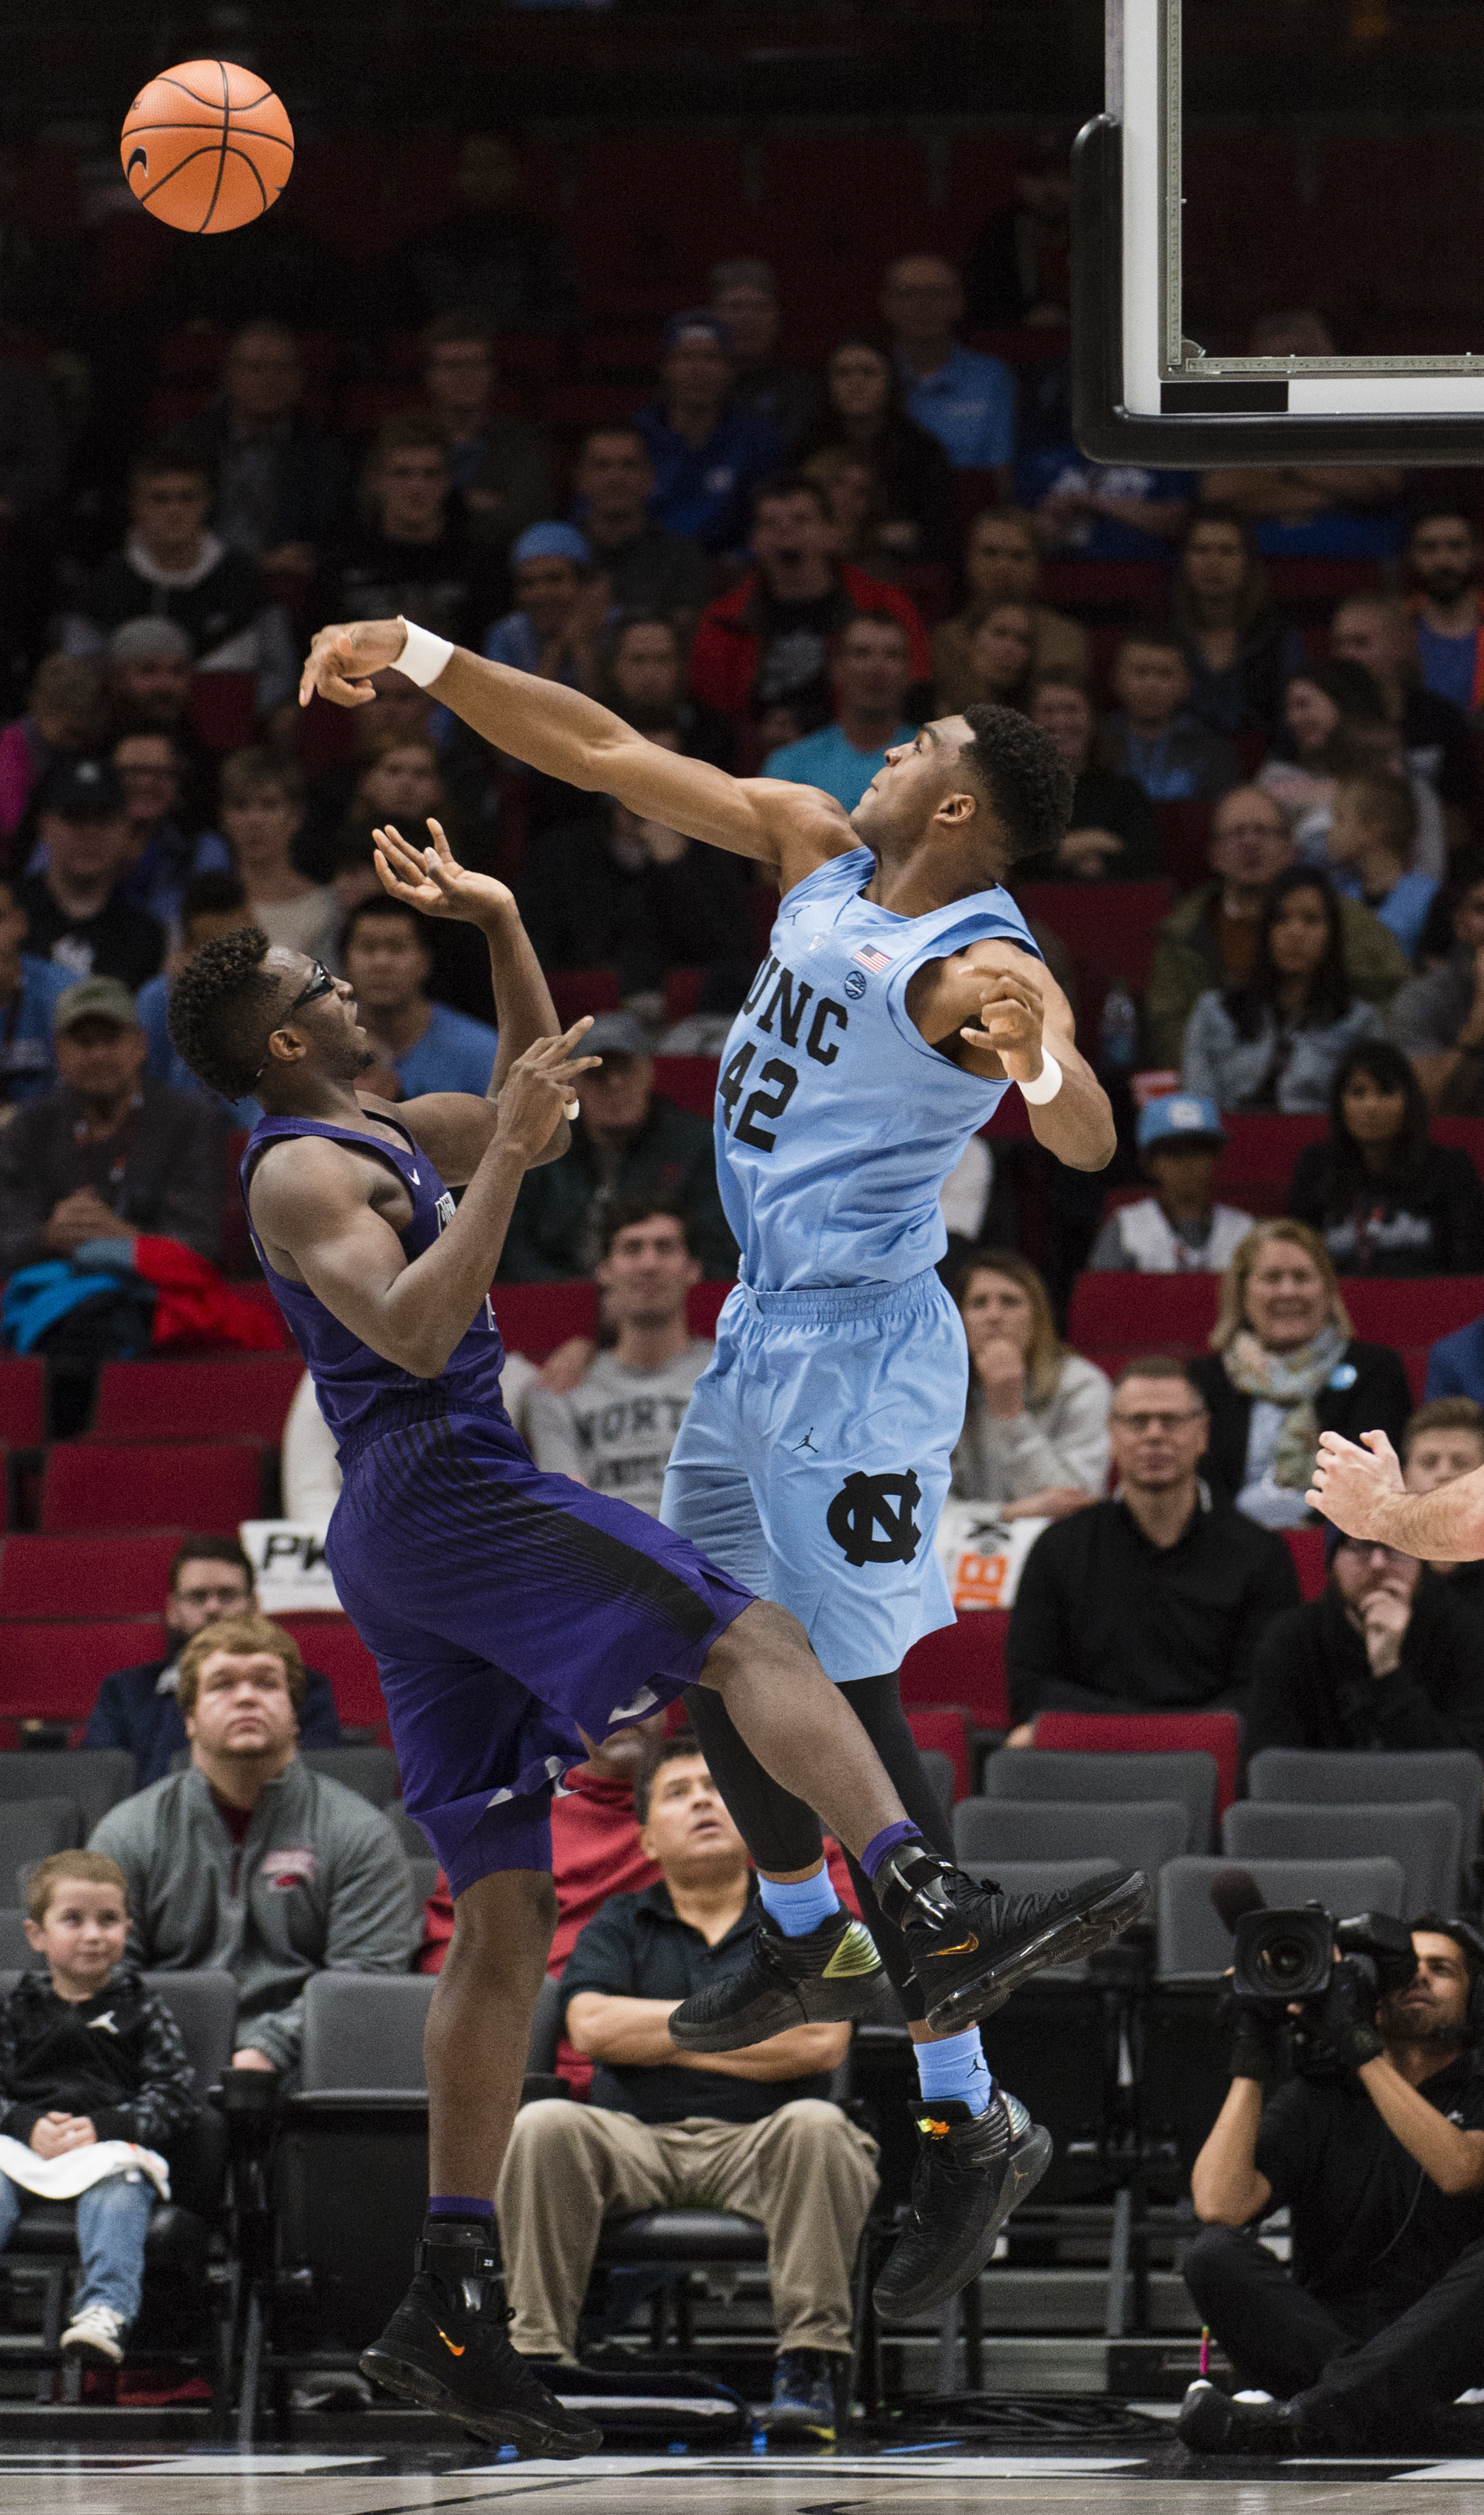 North Carolina forward Brandon Huffman, right, blocks a shot by Portland forward Tahirou Diabate, left, during the first half in an NCAA college basketball game at the Phil Knight Invitation Tournament, in Portland, Ore., Thursday, Nov. 23, 2017. (AP Photo/Troy Wayrynen)